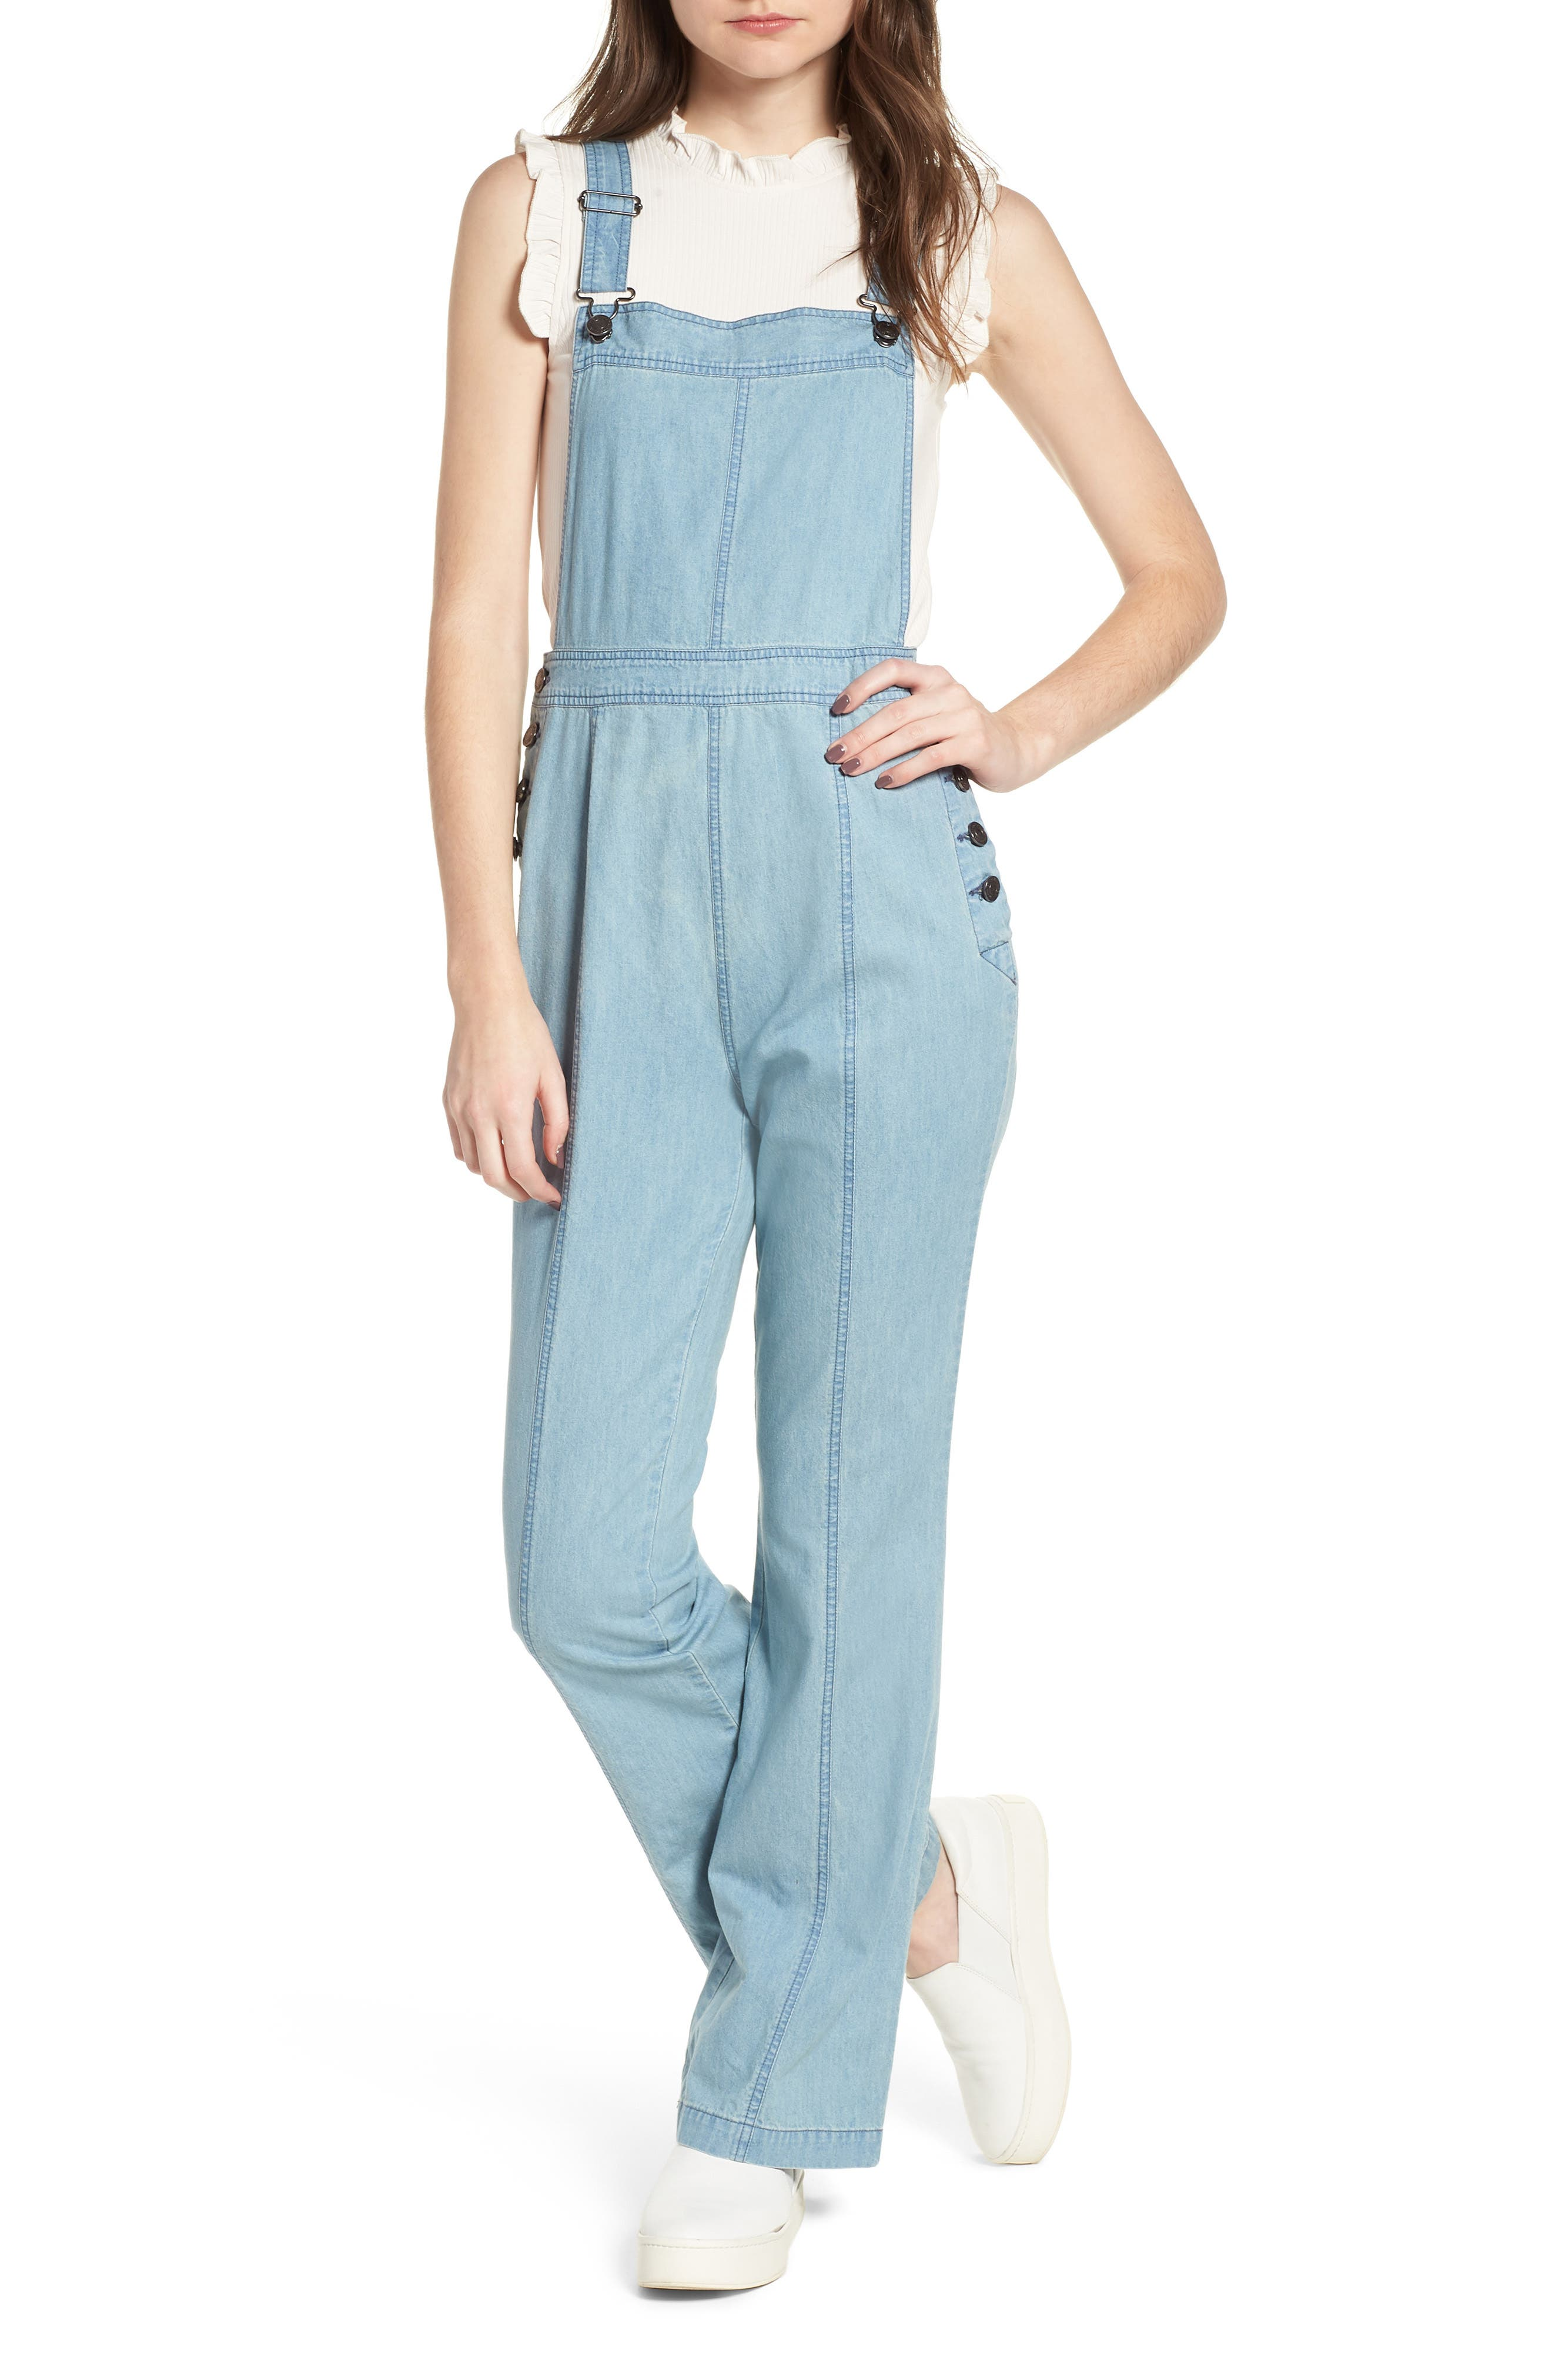 Meliani Denim Overalls,                             Main thumbnail 1, color,                             Denim